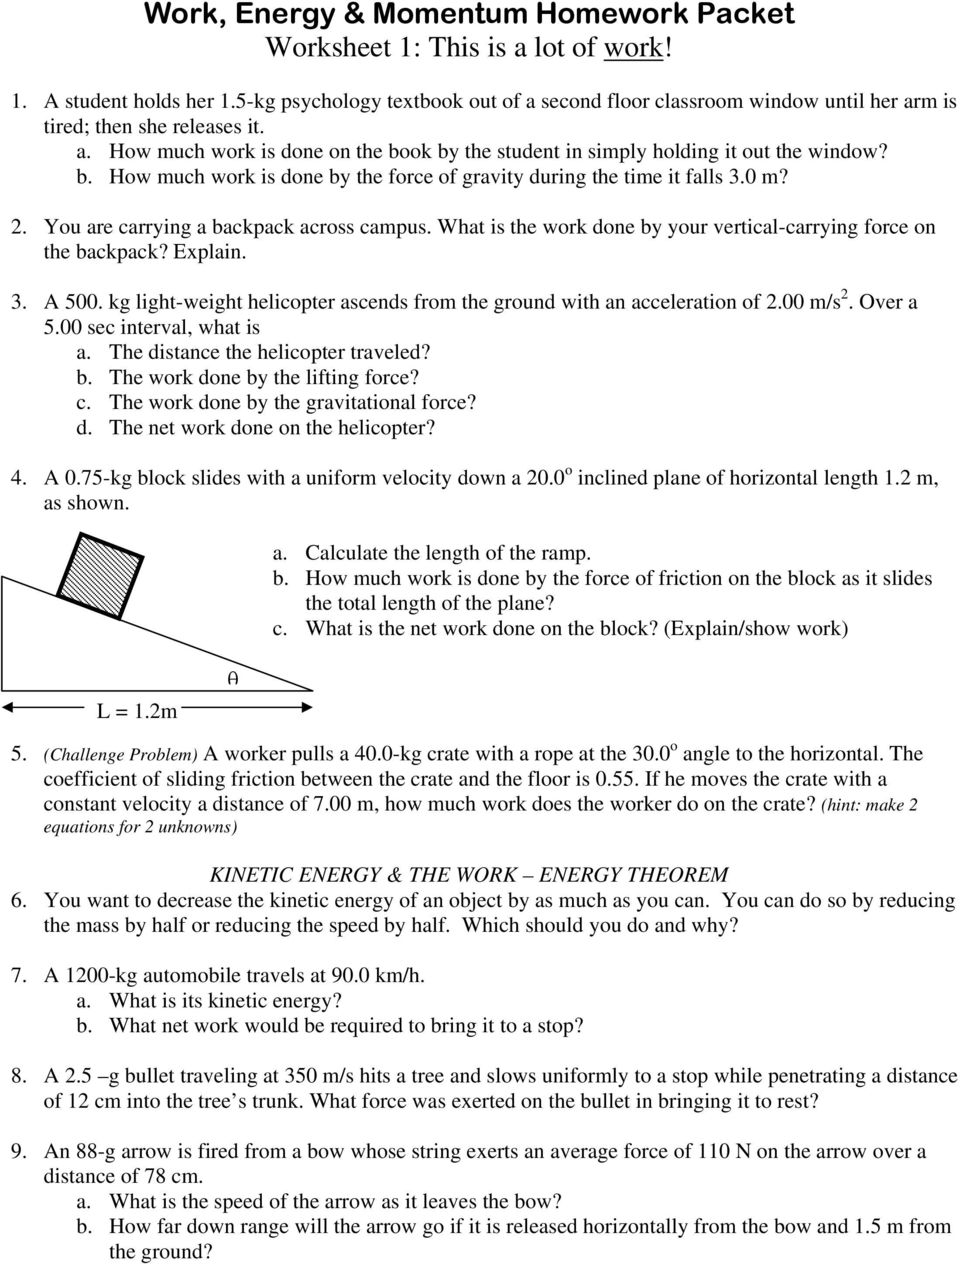 Work Energy  Momentum Homework Packet Worksheet 1 This is a lot